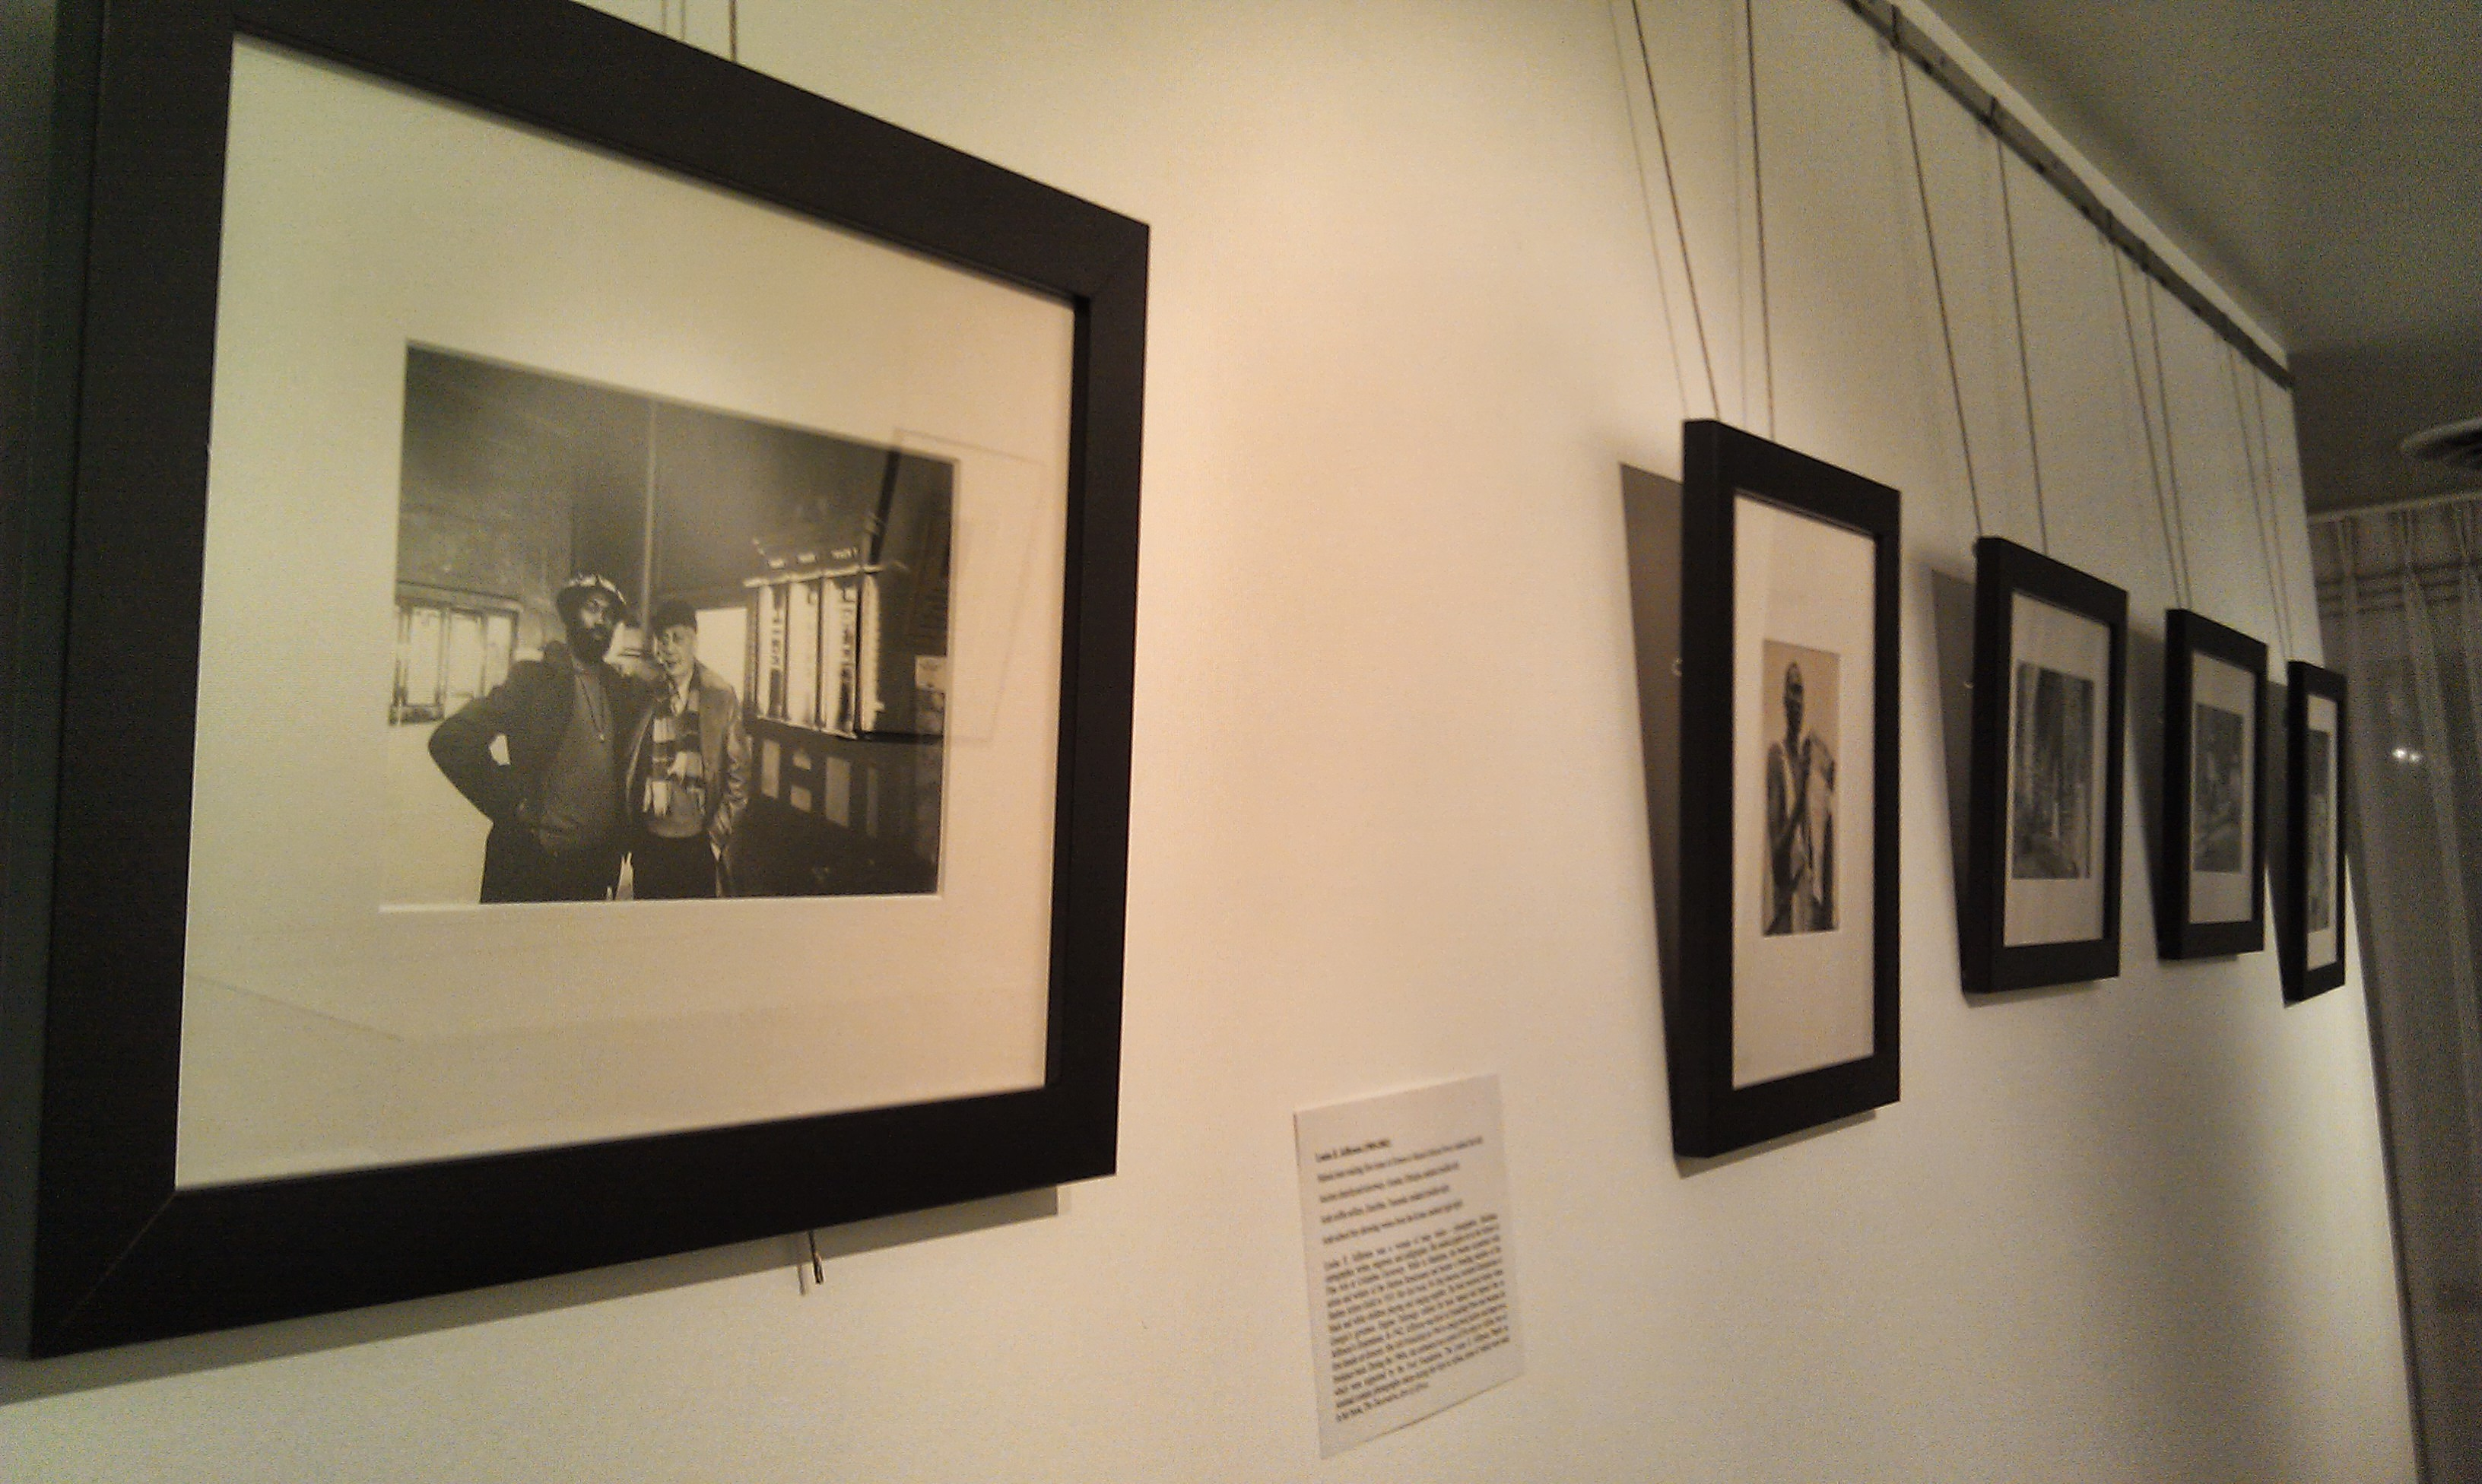 Amistad -- Exhibition of Photography